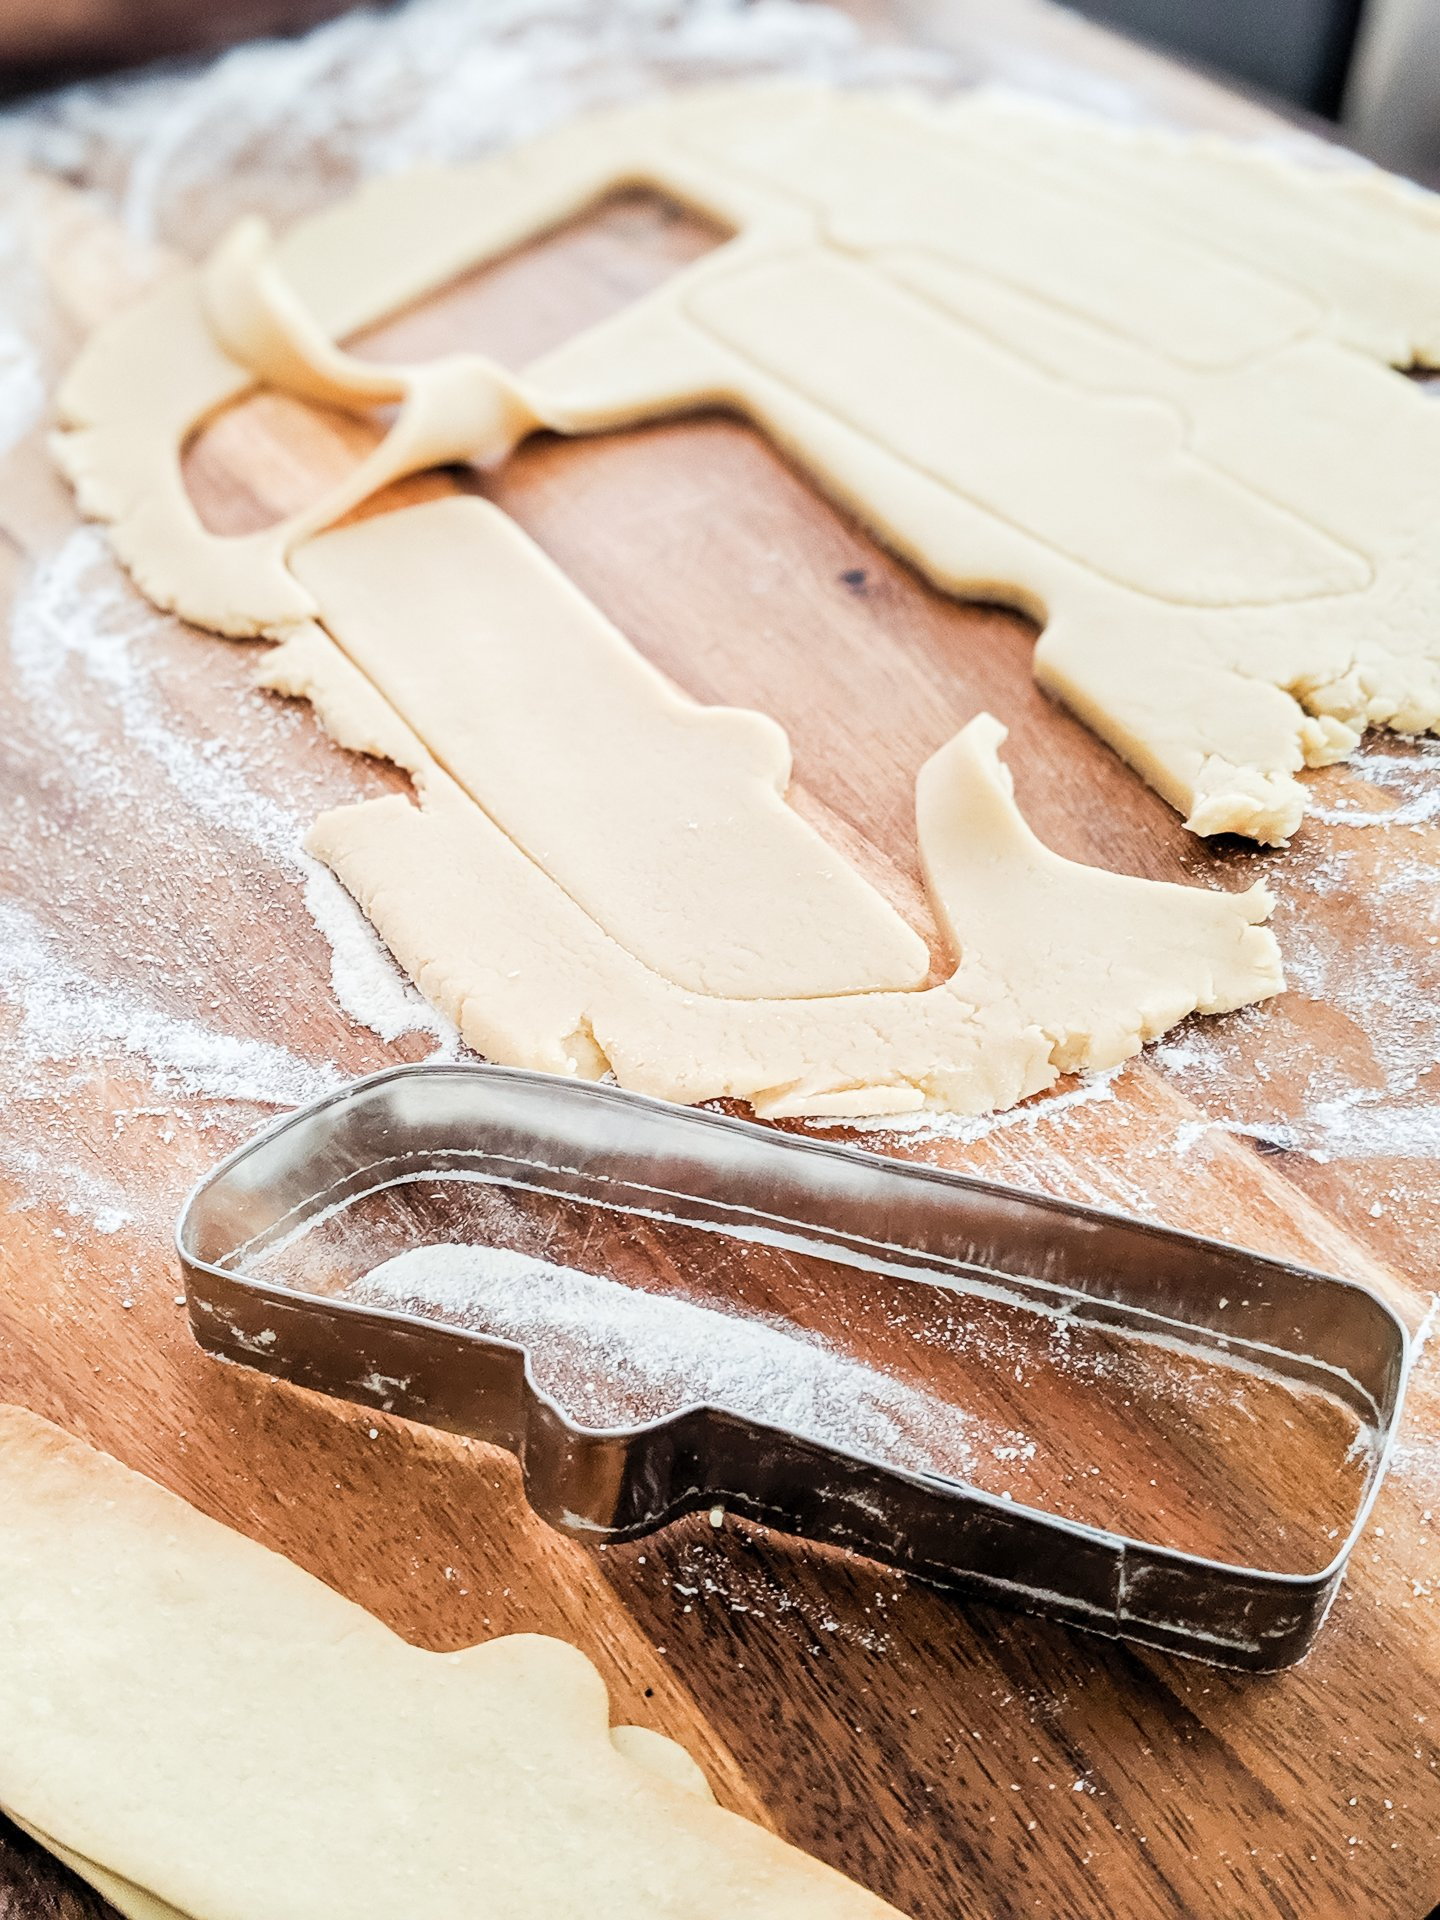 diy cookie cutter and dough